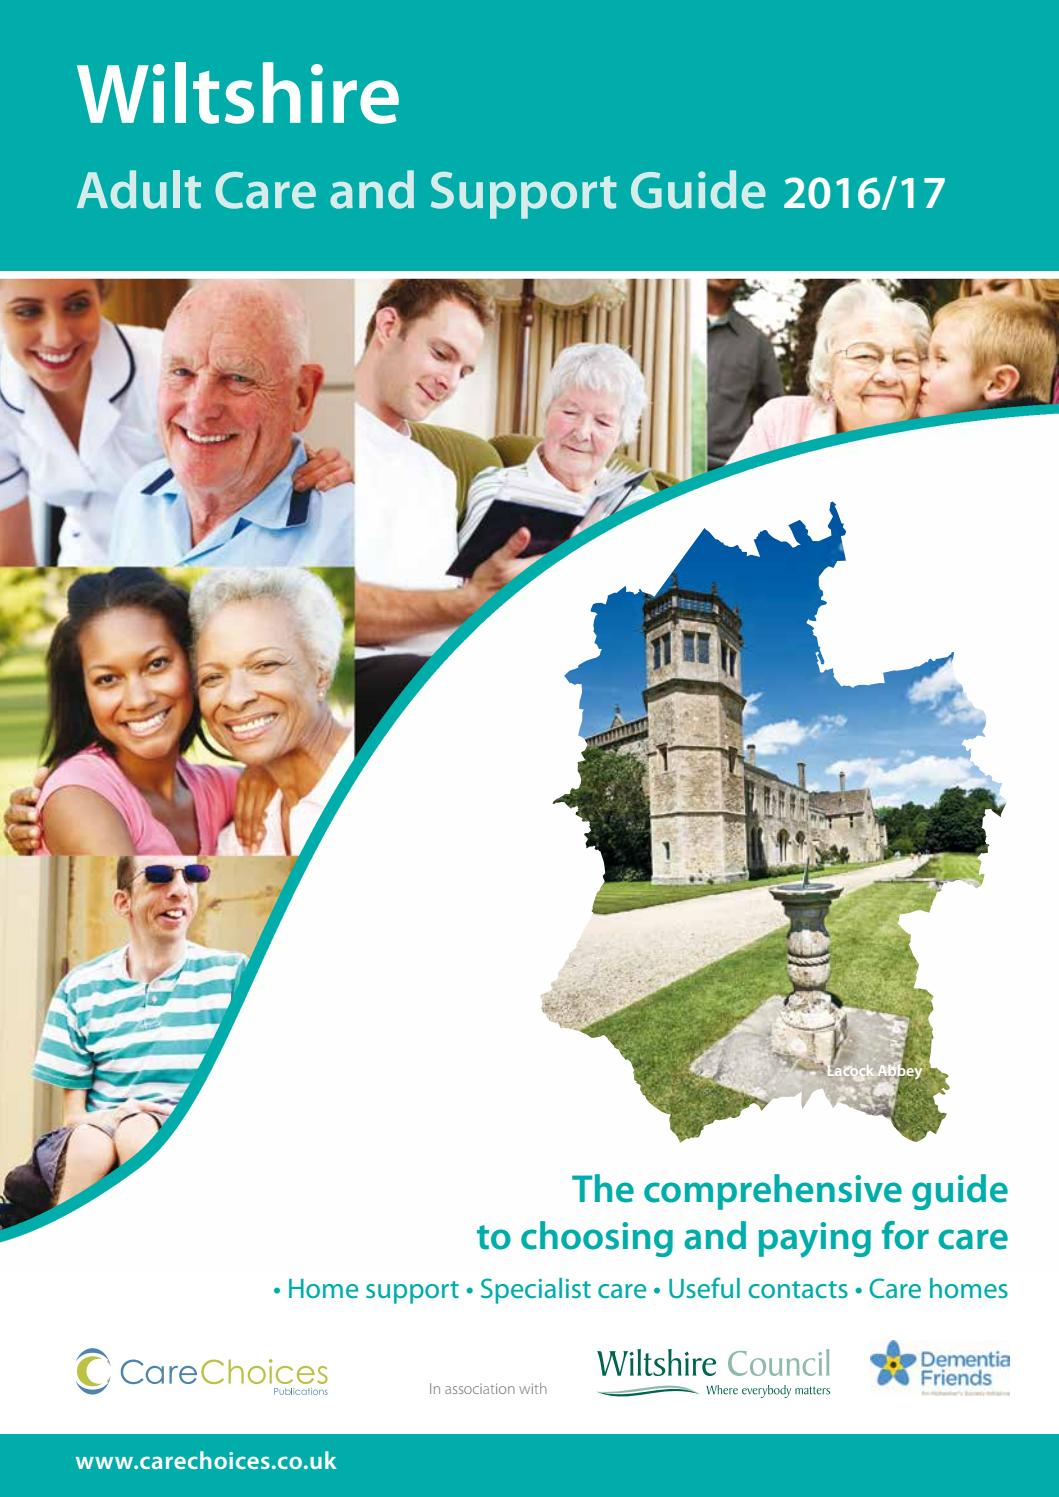 Lower meadow is a 40 capacity stratford care home that looks to take a - Wiltshire Adult Care And Support Guide 2016 17 By Care Choices Ltd Issuu